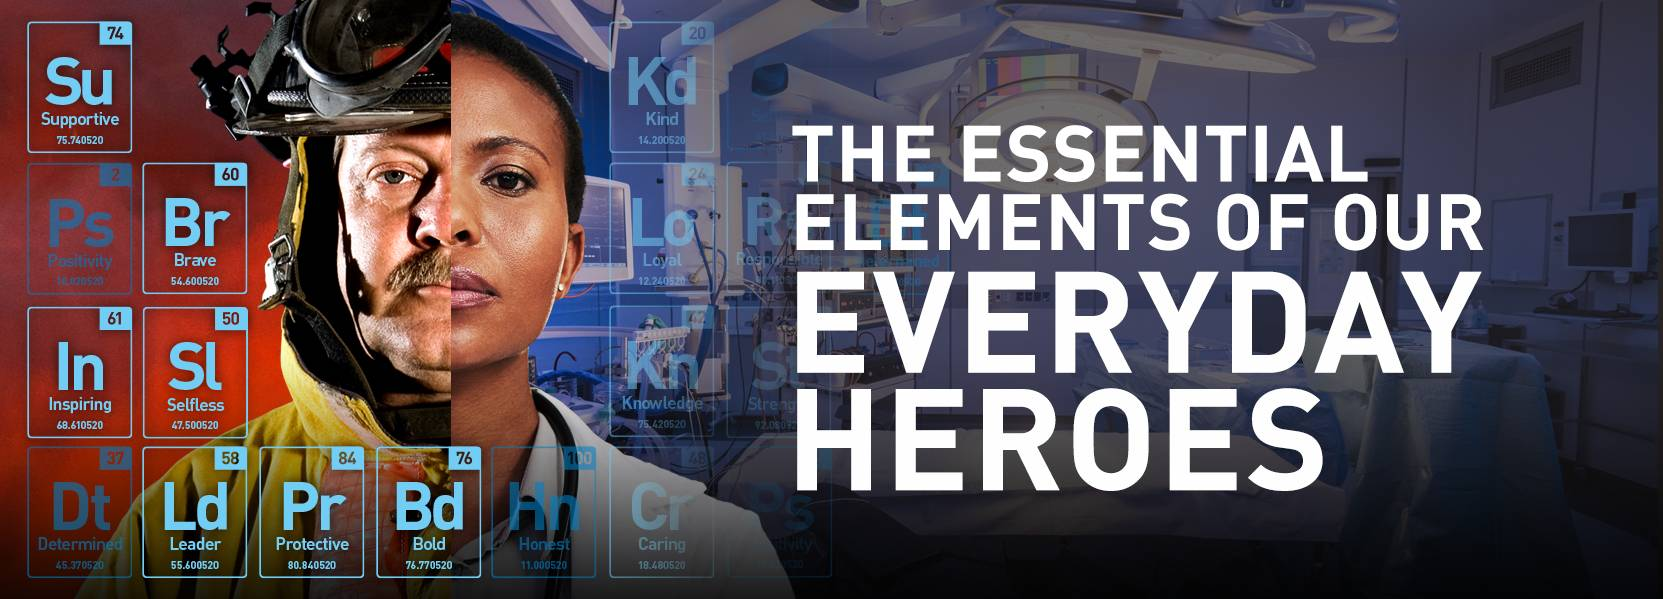 The Essential Elements of Our Everyday Heroes